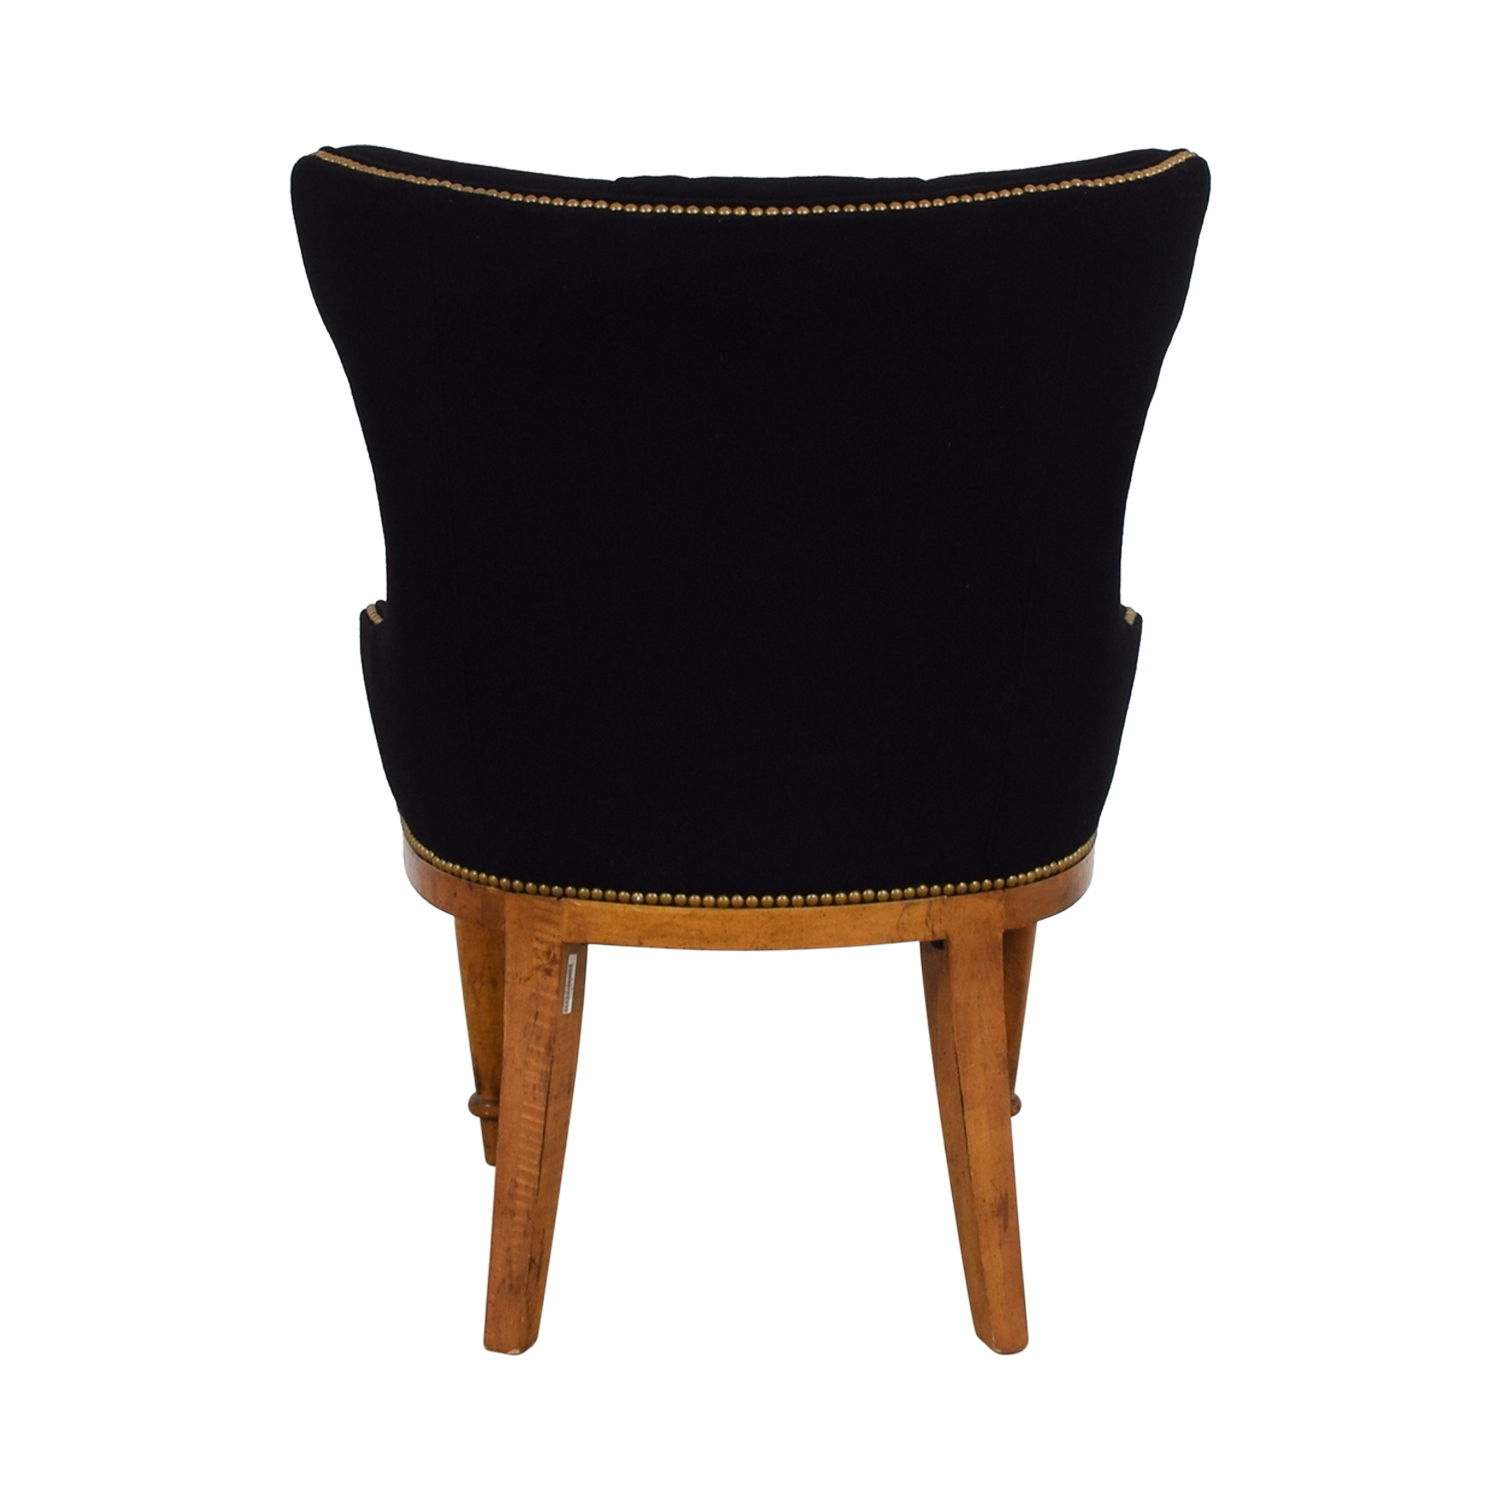 Furniture Masters Furniture Masters Black Tufted Nailhead Accent Chair for sale